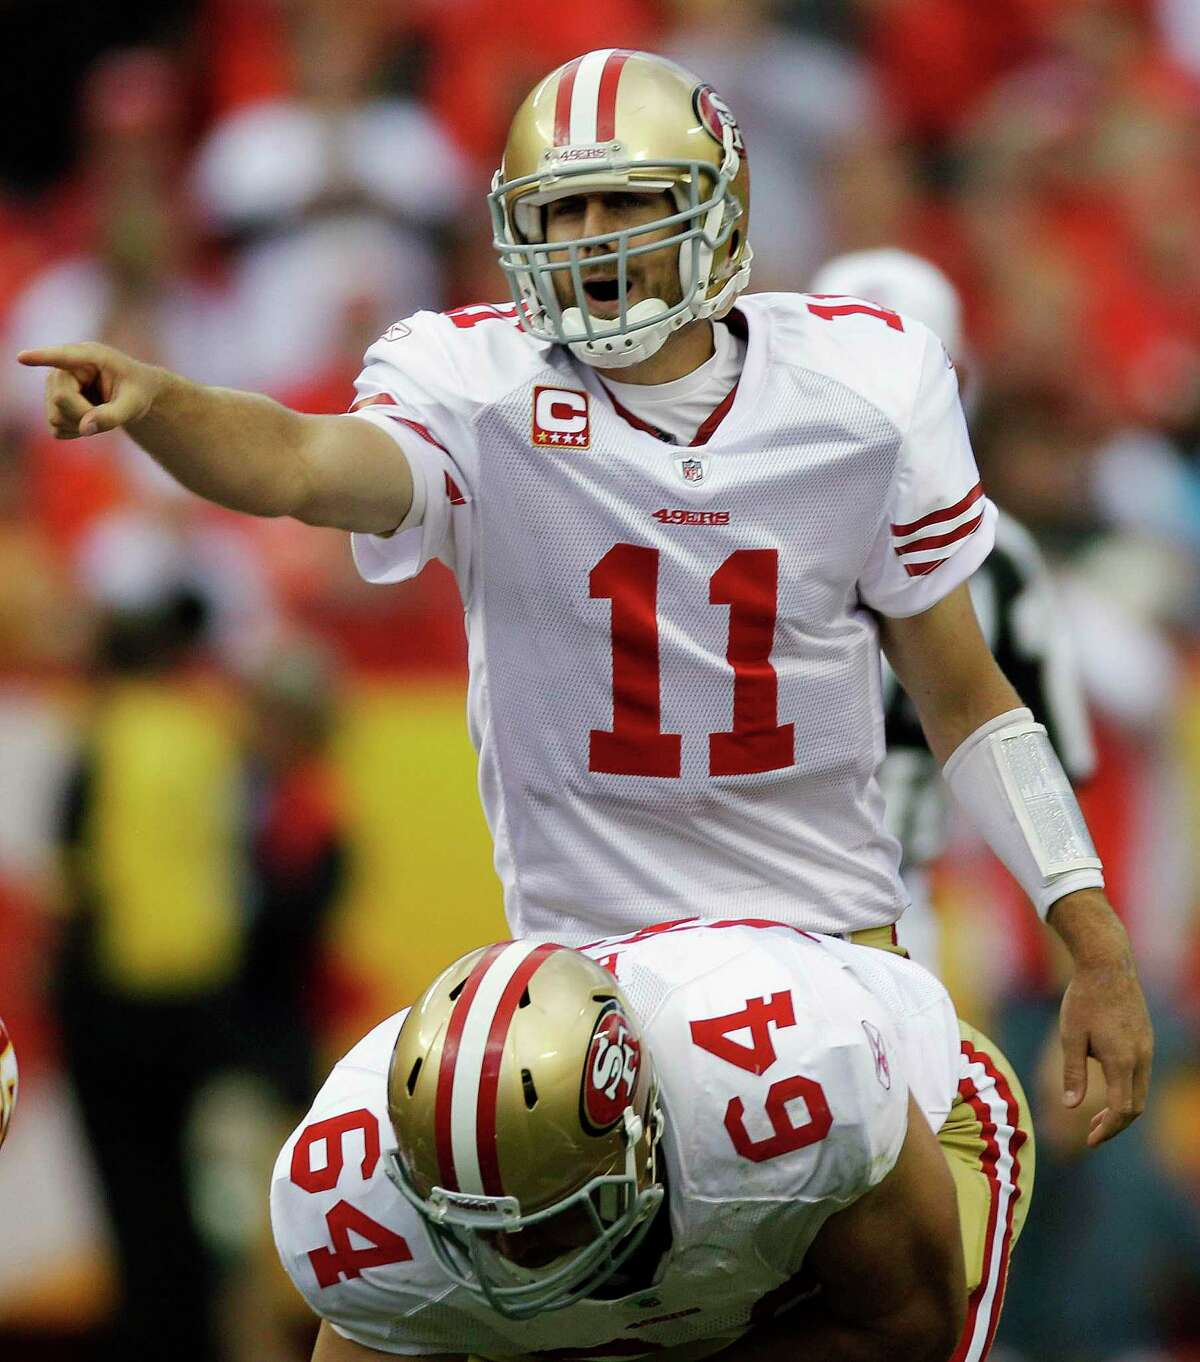 FILE - In this Sept. 26, 2010 file photo, San Francisco 49ers quarterback Alex Smith (11) gestures during the first half of an NFL football game against the Kansas City Chiefs in Kansas City, Mo. Smith is headed to Kansas City, the first major acquisition by the Chiefs since Andy Reid took over as coach. A person with knowledge of the trade told The Associated Press on Wednesday, Feb. 27, 2013, that the Chiefs have agreed to deal for the 2005 top overall draft pick who lost his starting quarterback job in San Francisco to Colin Kaepernick last season. The person spoke on condition of anonymity because the trade does not become official until March 12, when the NFL's new business year begins. (AP Photo/Orlin Wagner)